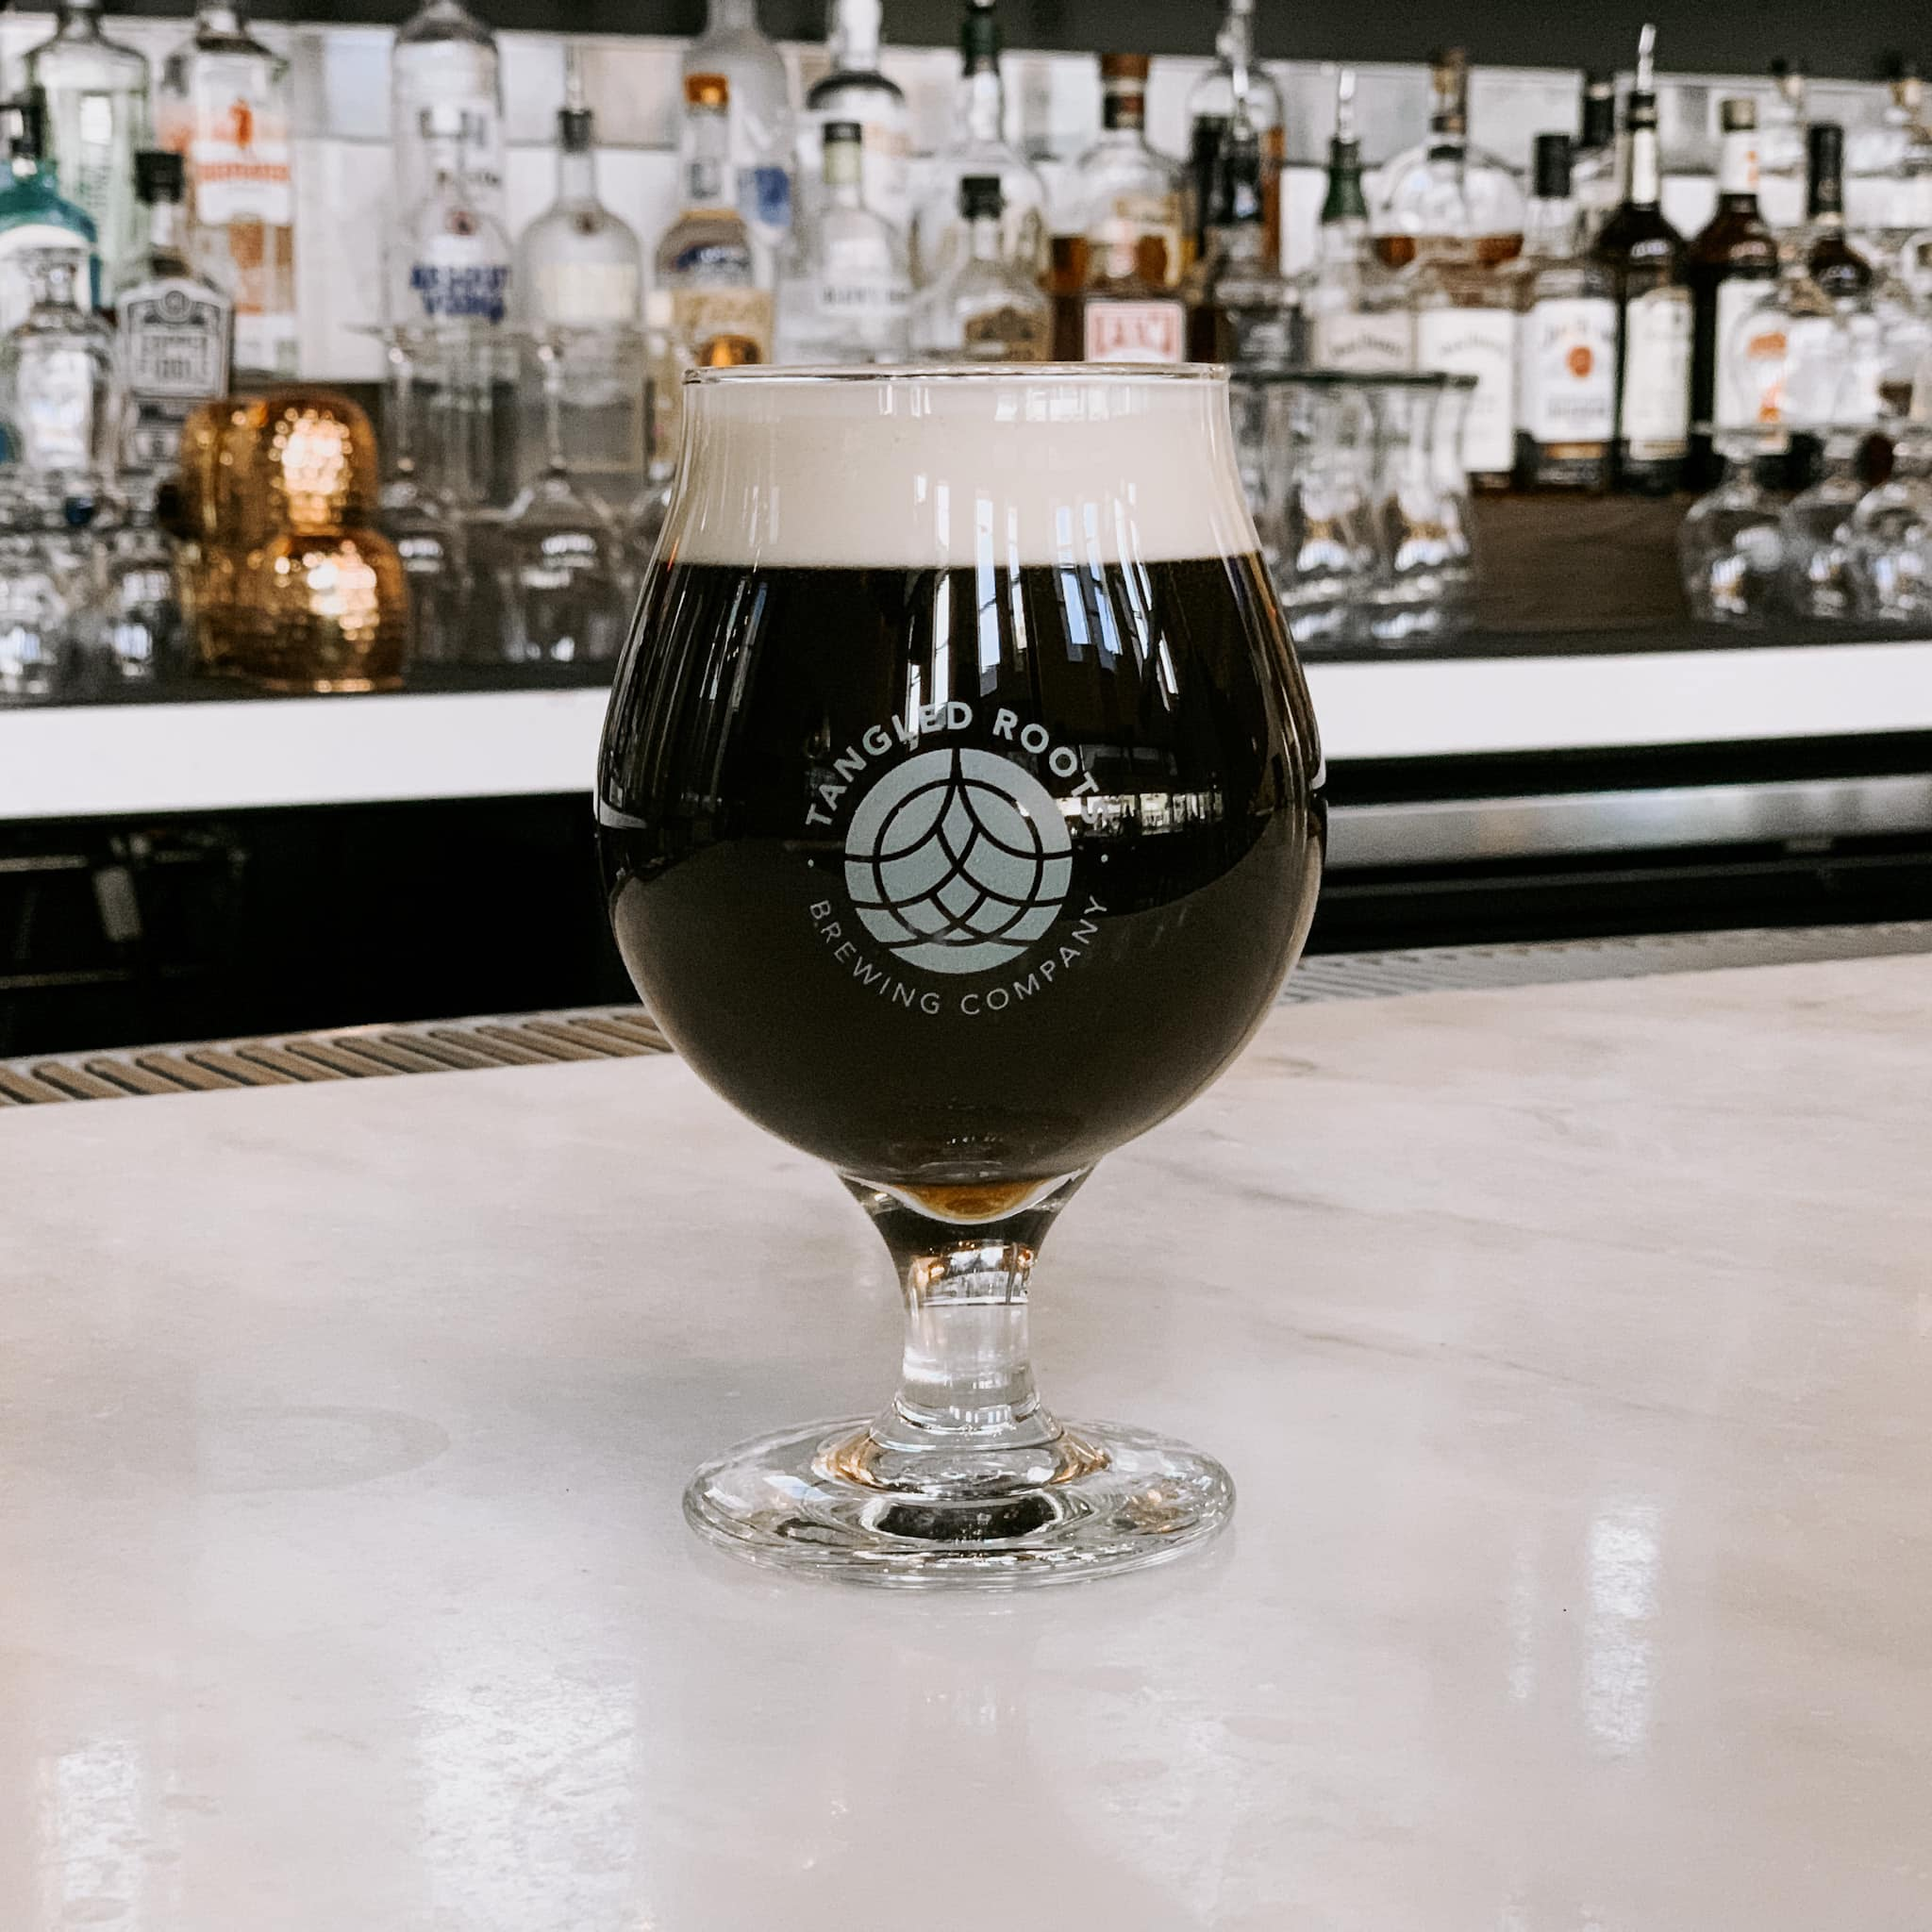 Tangled Roots Brewing Co's Mixed Berry Stout in a glass on their bar